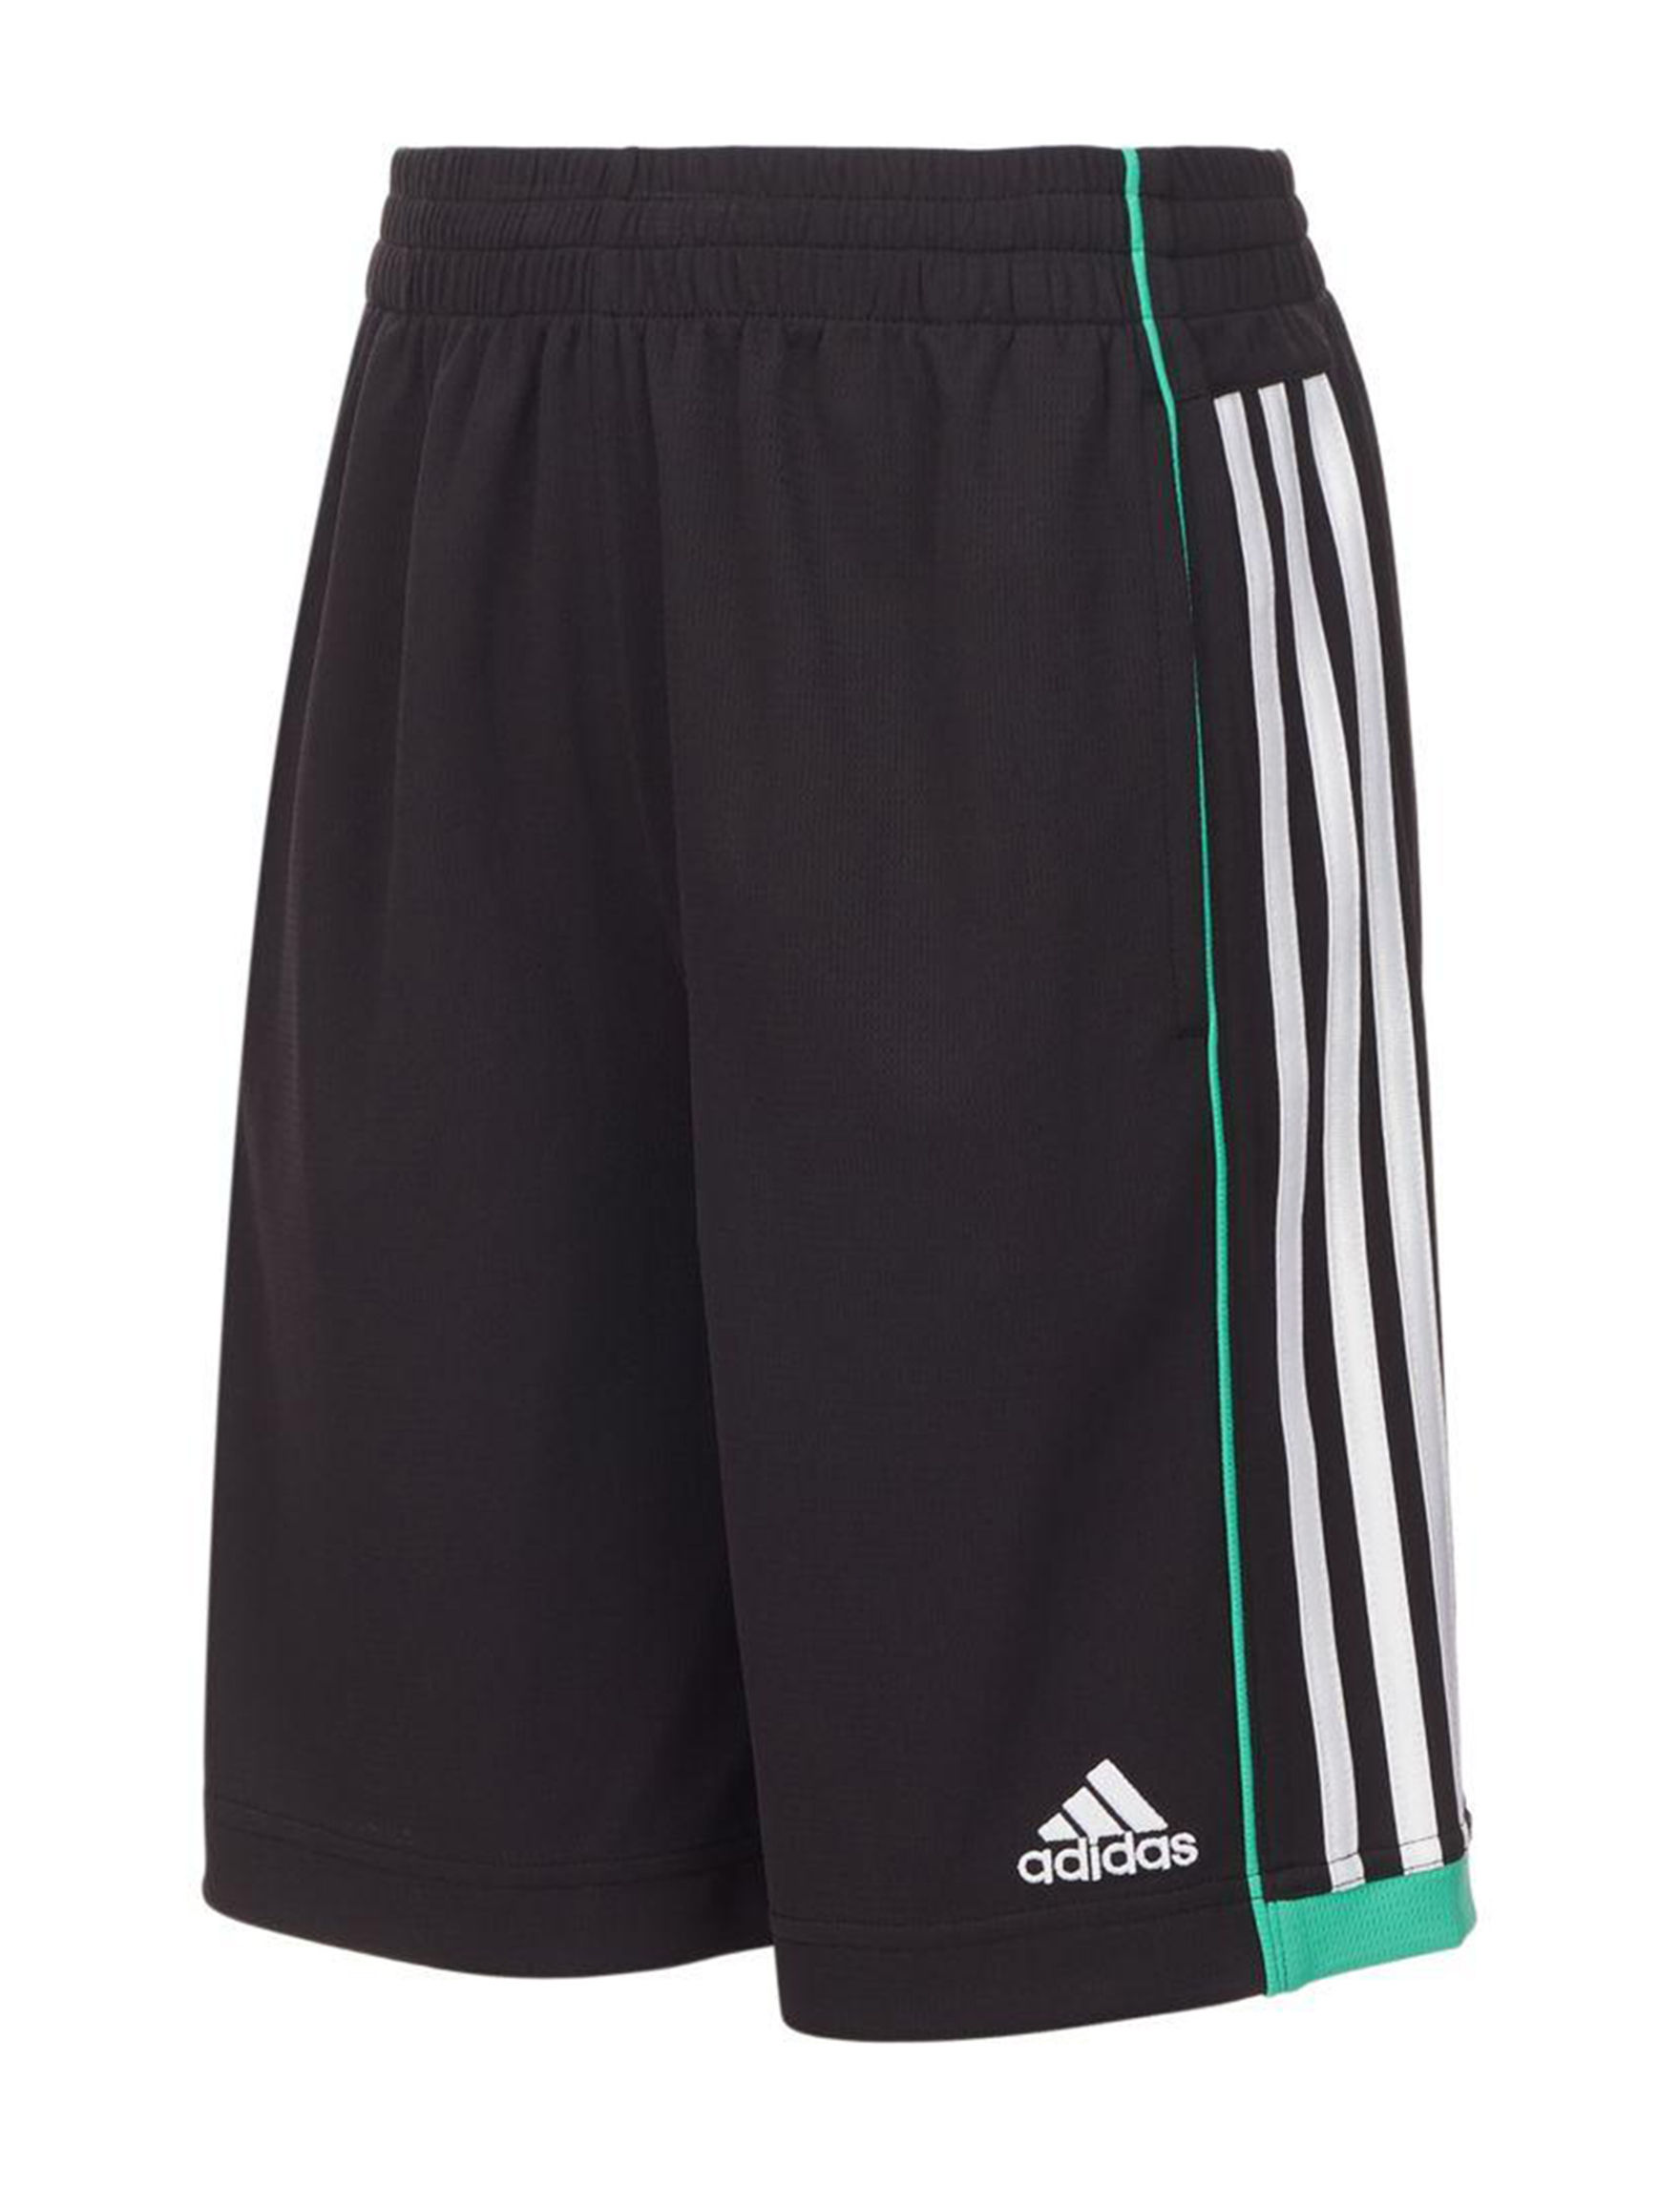 Adidas Black / Green Soft Shorts